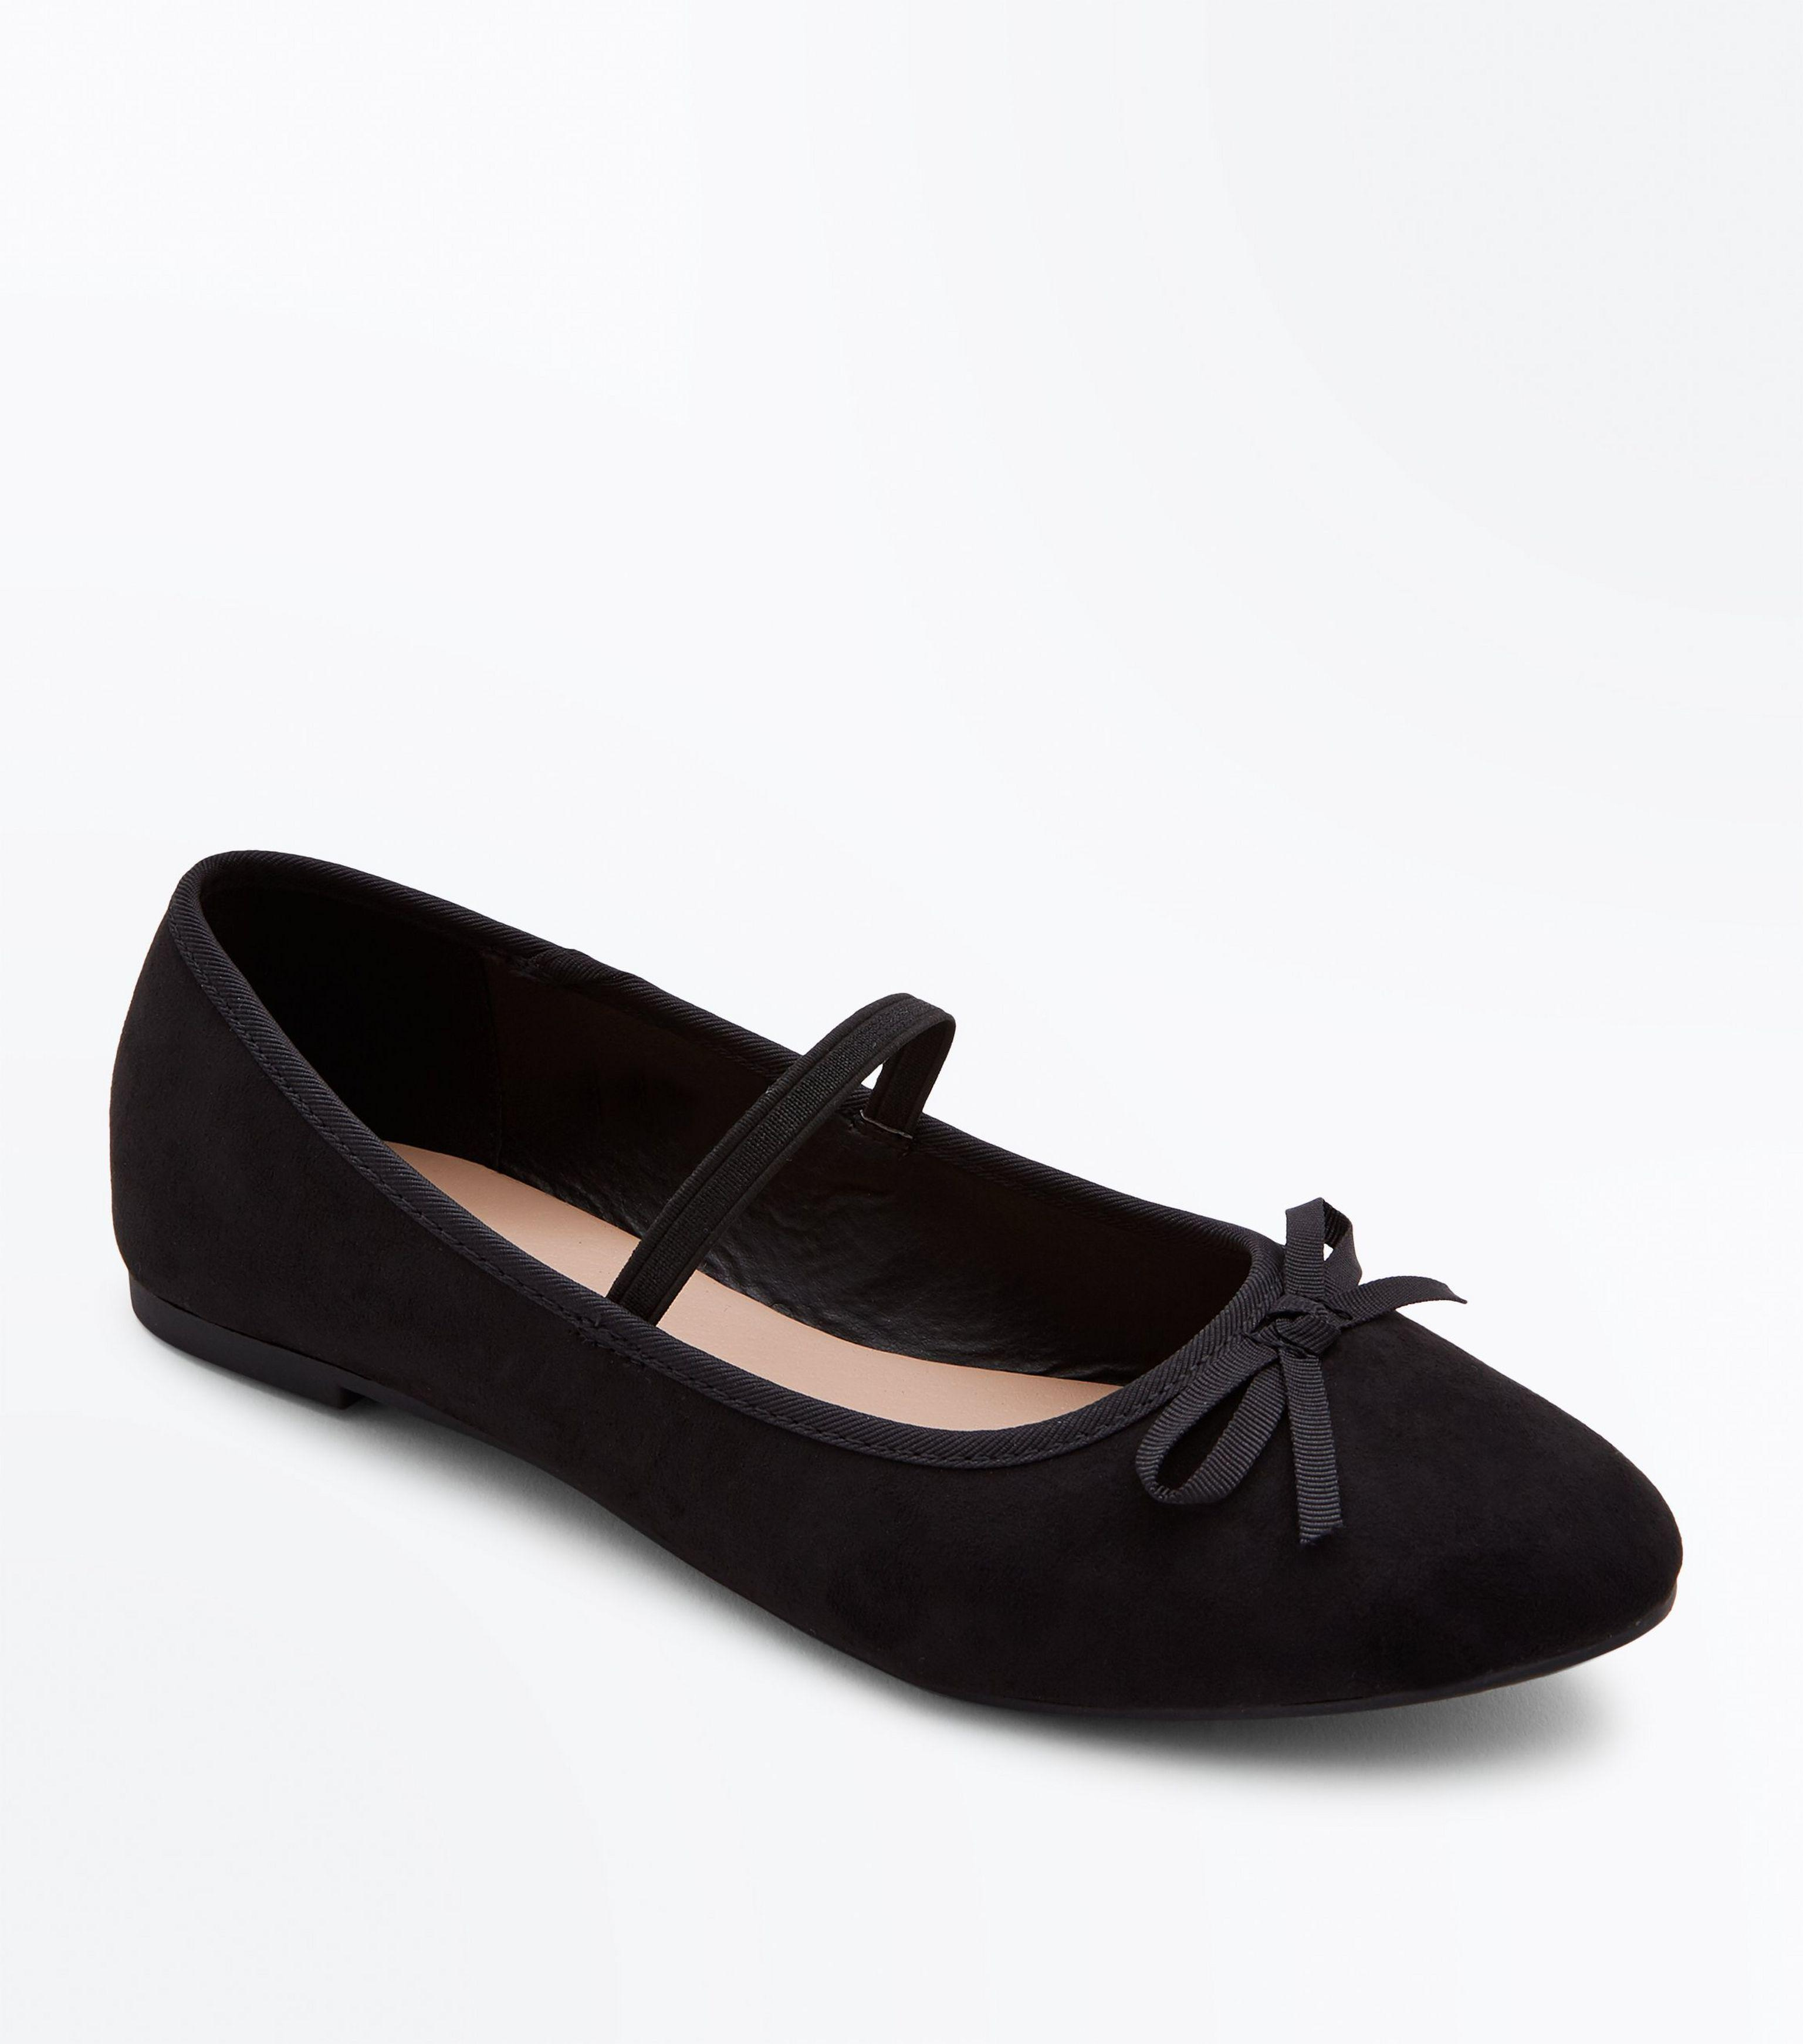 c0fd03232c New Look Girls Black Suedette Bow Front Strap Ballet Pumps in Black ...